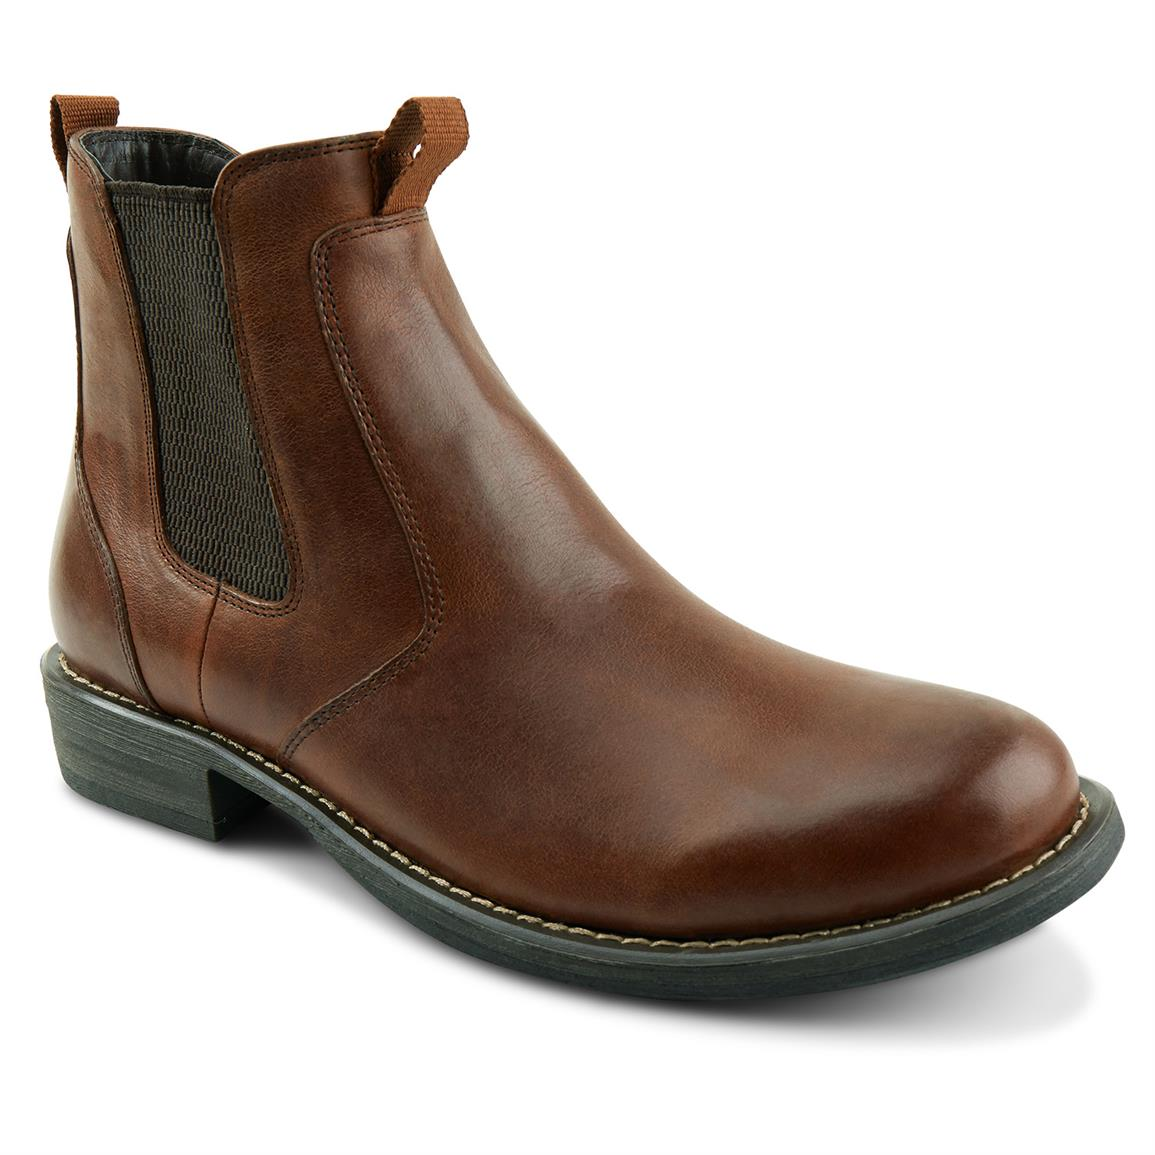 Eastland Daily Double Boots, Tan